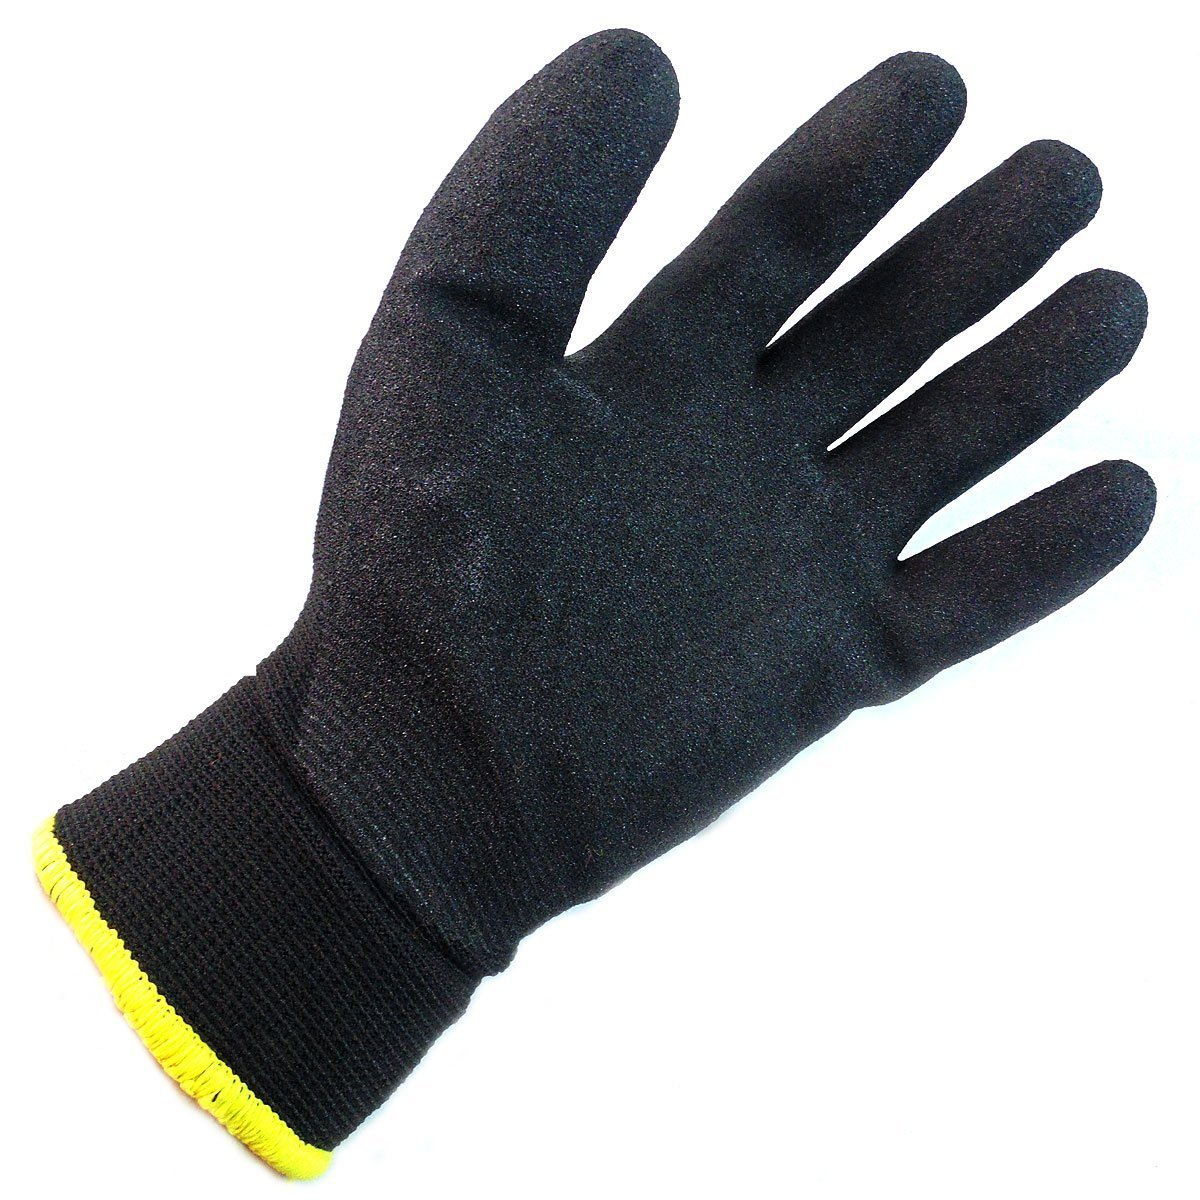 Better Grip BGWANS Safety Winter Insulated Double Lining Rubber Coated Work Gloves 3 Pairs//Pack Extra Large, Military Brown